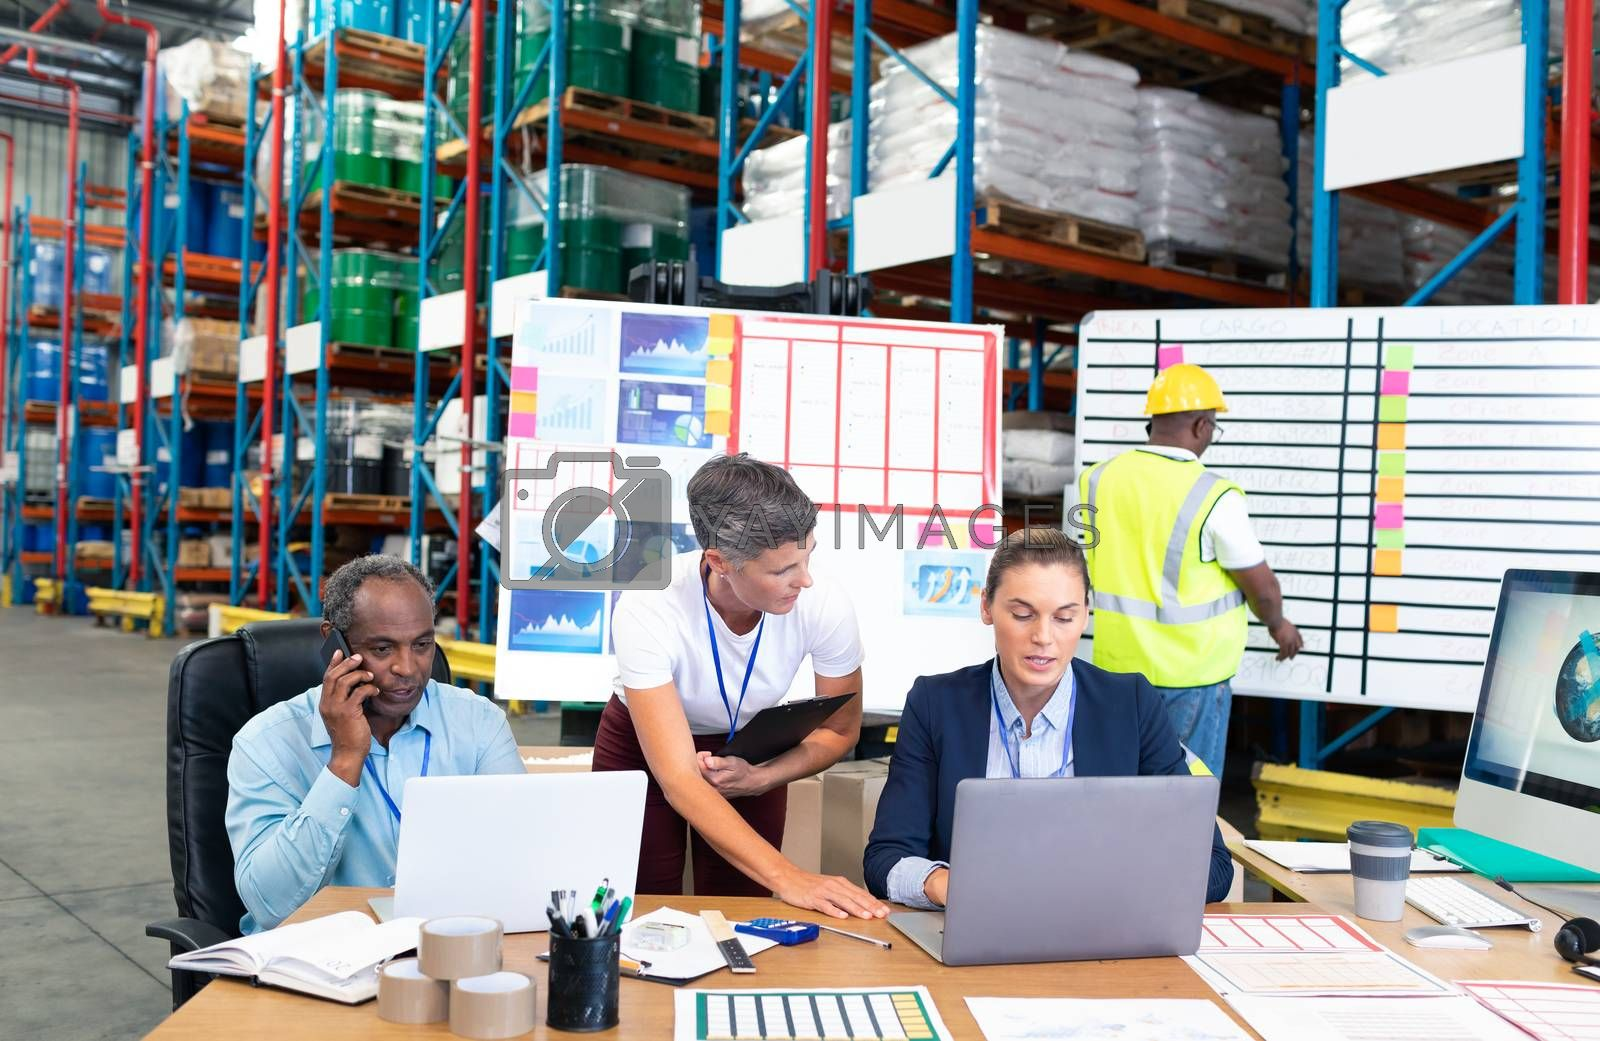 Front view of mature Caucasian female manager with her coworker discussing over laptop at desk in warehouse. This is a freight transportation and distribution warehouse. Industrial and industrial workers concept